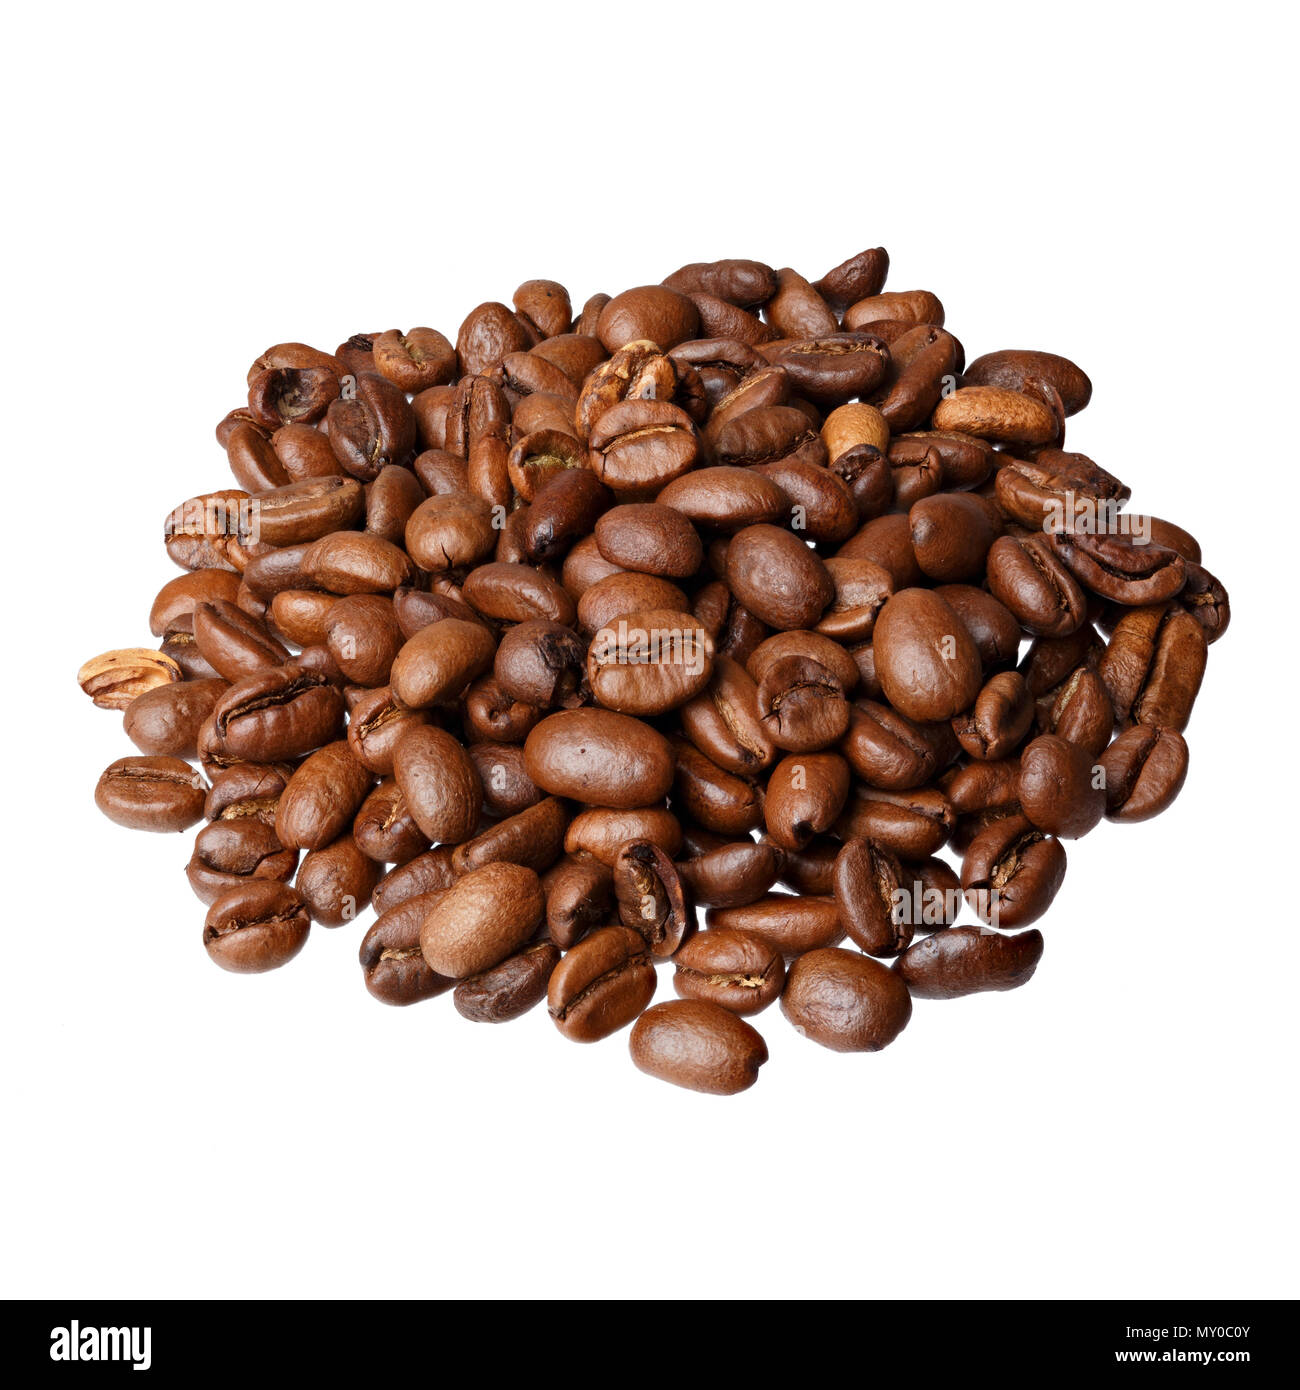 Ethiopia Mocca gourmet coffee on white background. - Stock Image